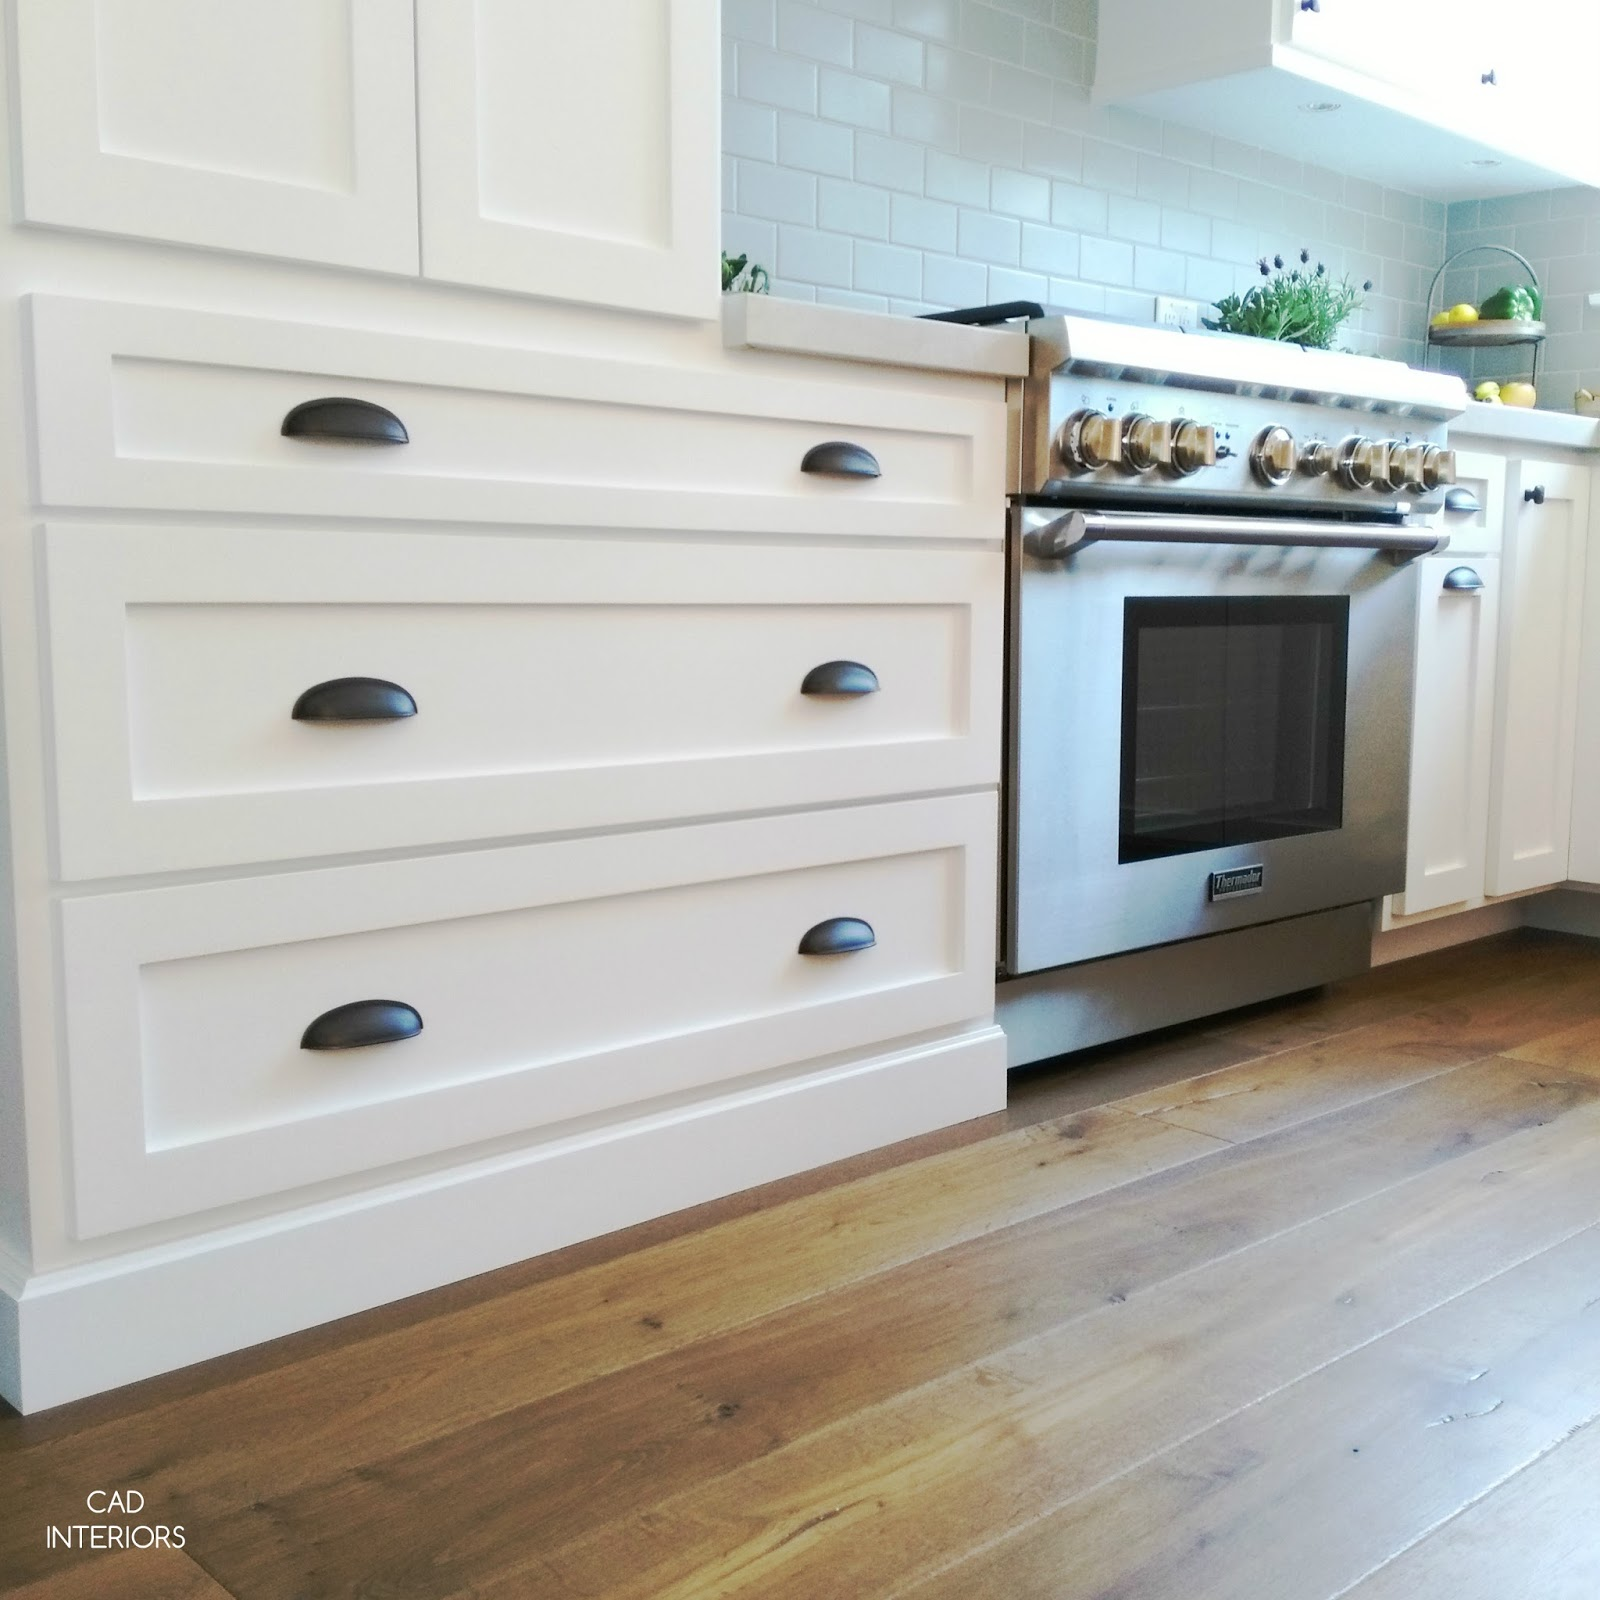 european oak hardwood floors modern farmhouse kitchen interior design renovation